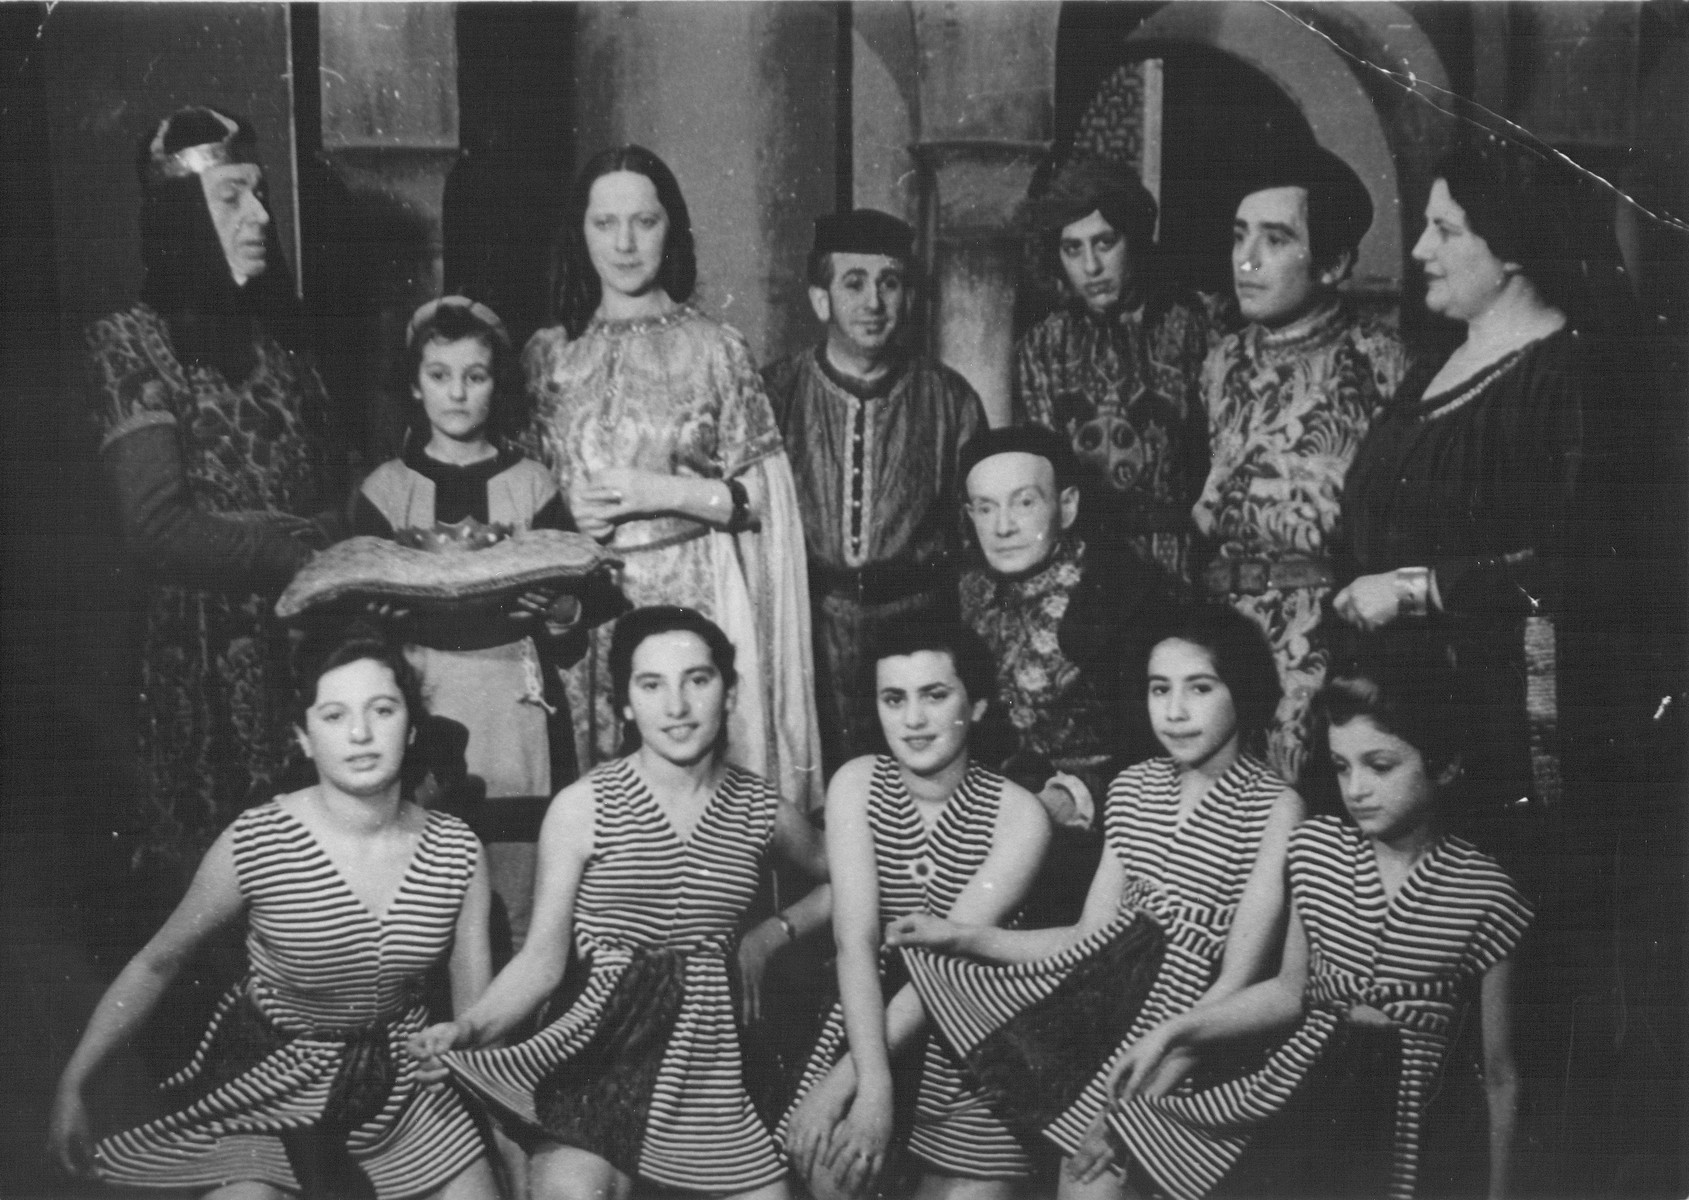 Group portrait of Jewish DPs celebrating Purim at the Wittenau displaced persons camp in the French zone of Berlin.